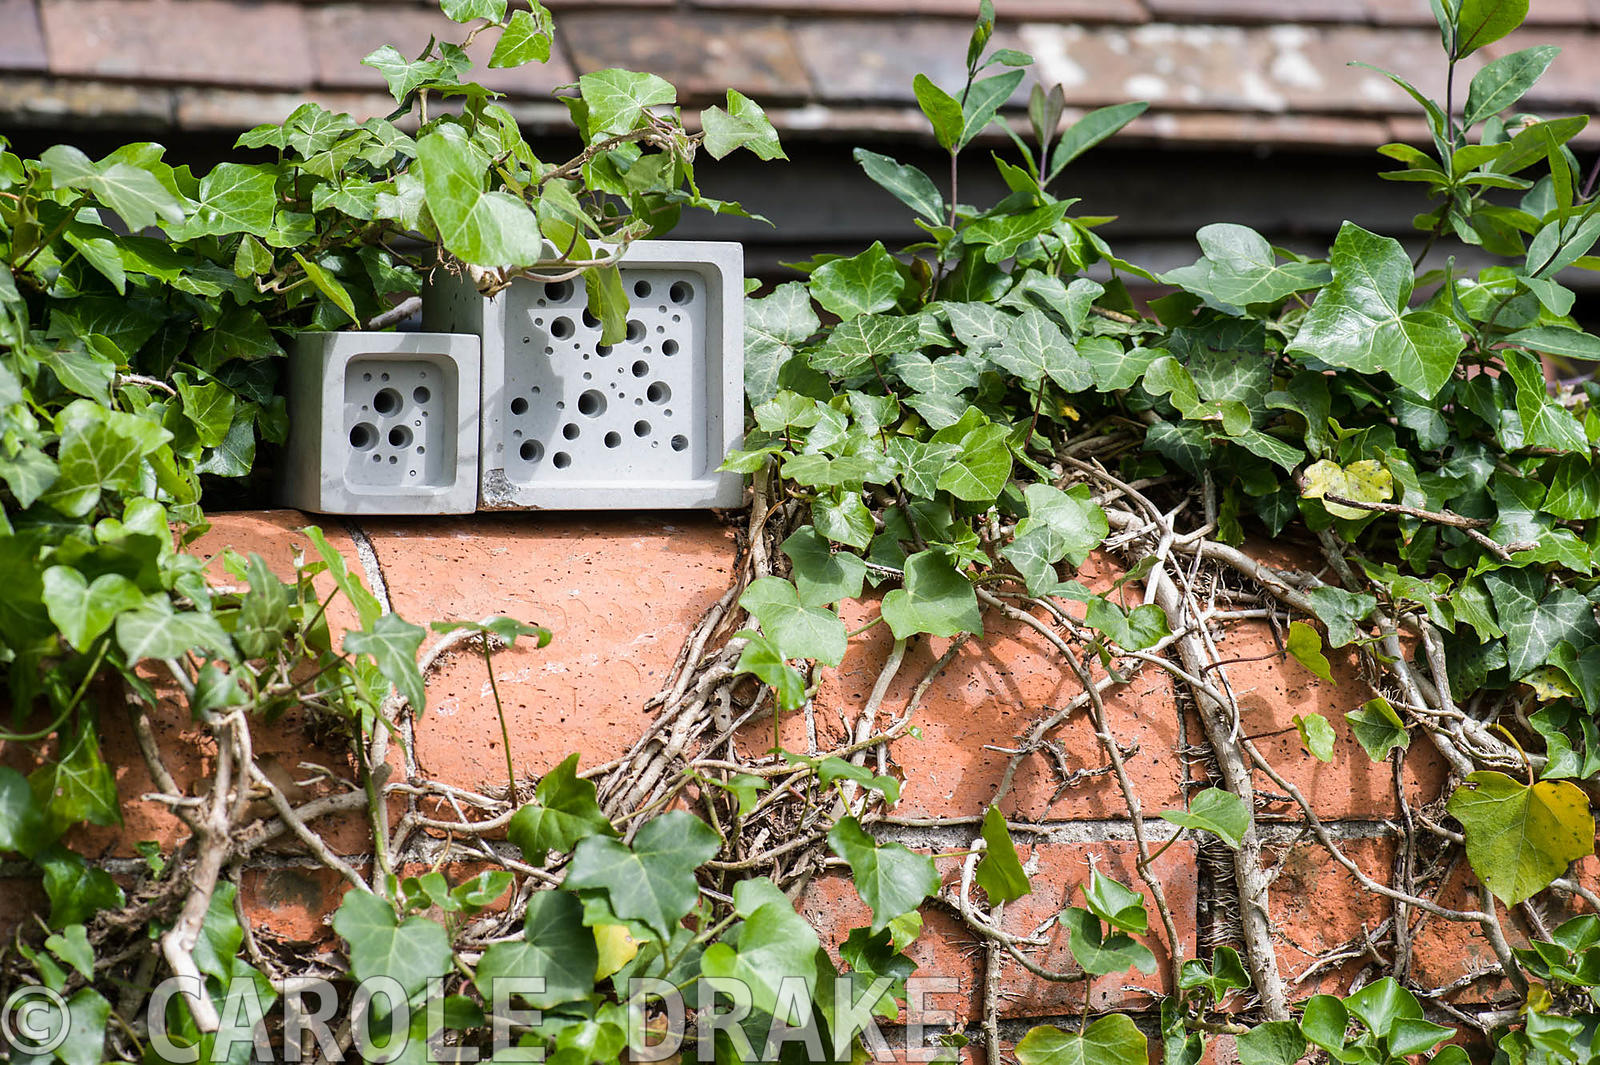 Bee bricks, for solitary bees to make their nests in, on a brick wall surrounded by ivy.